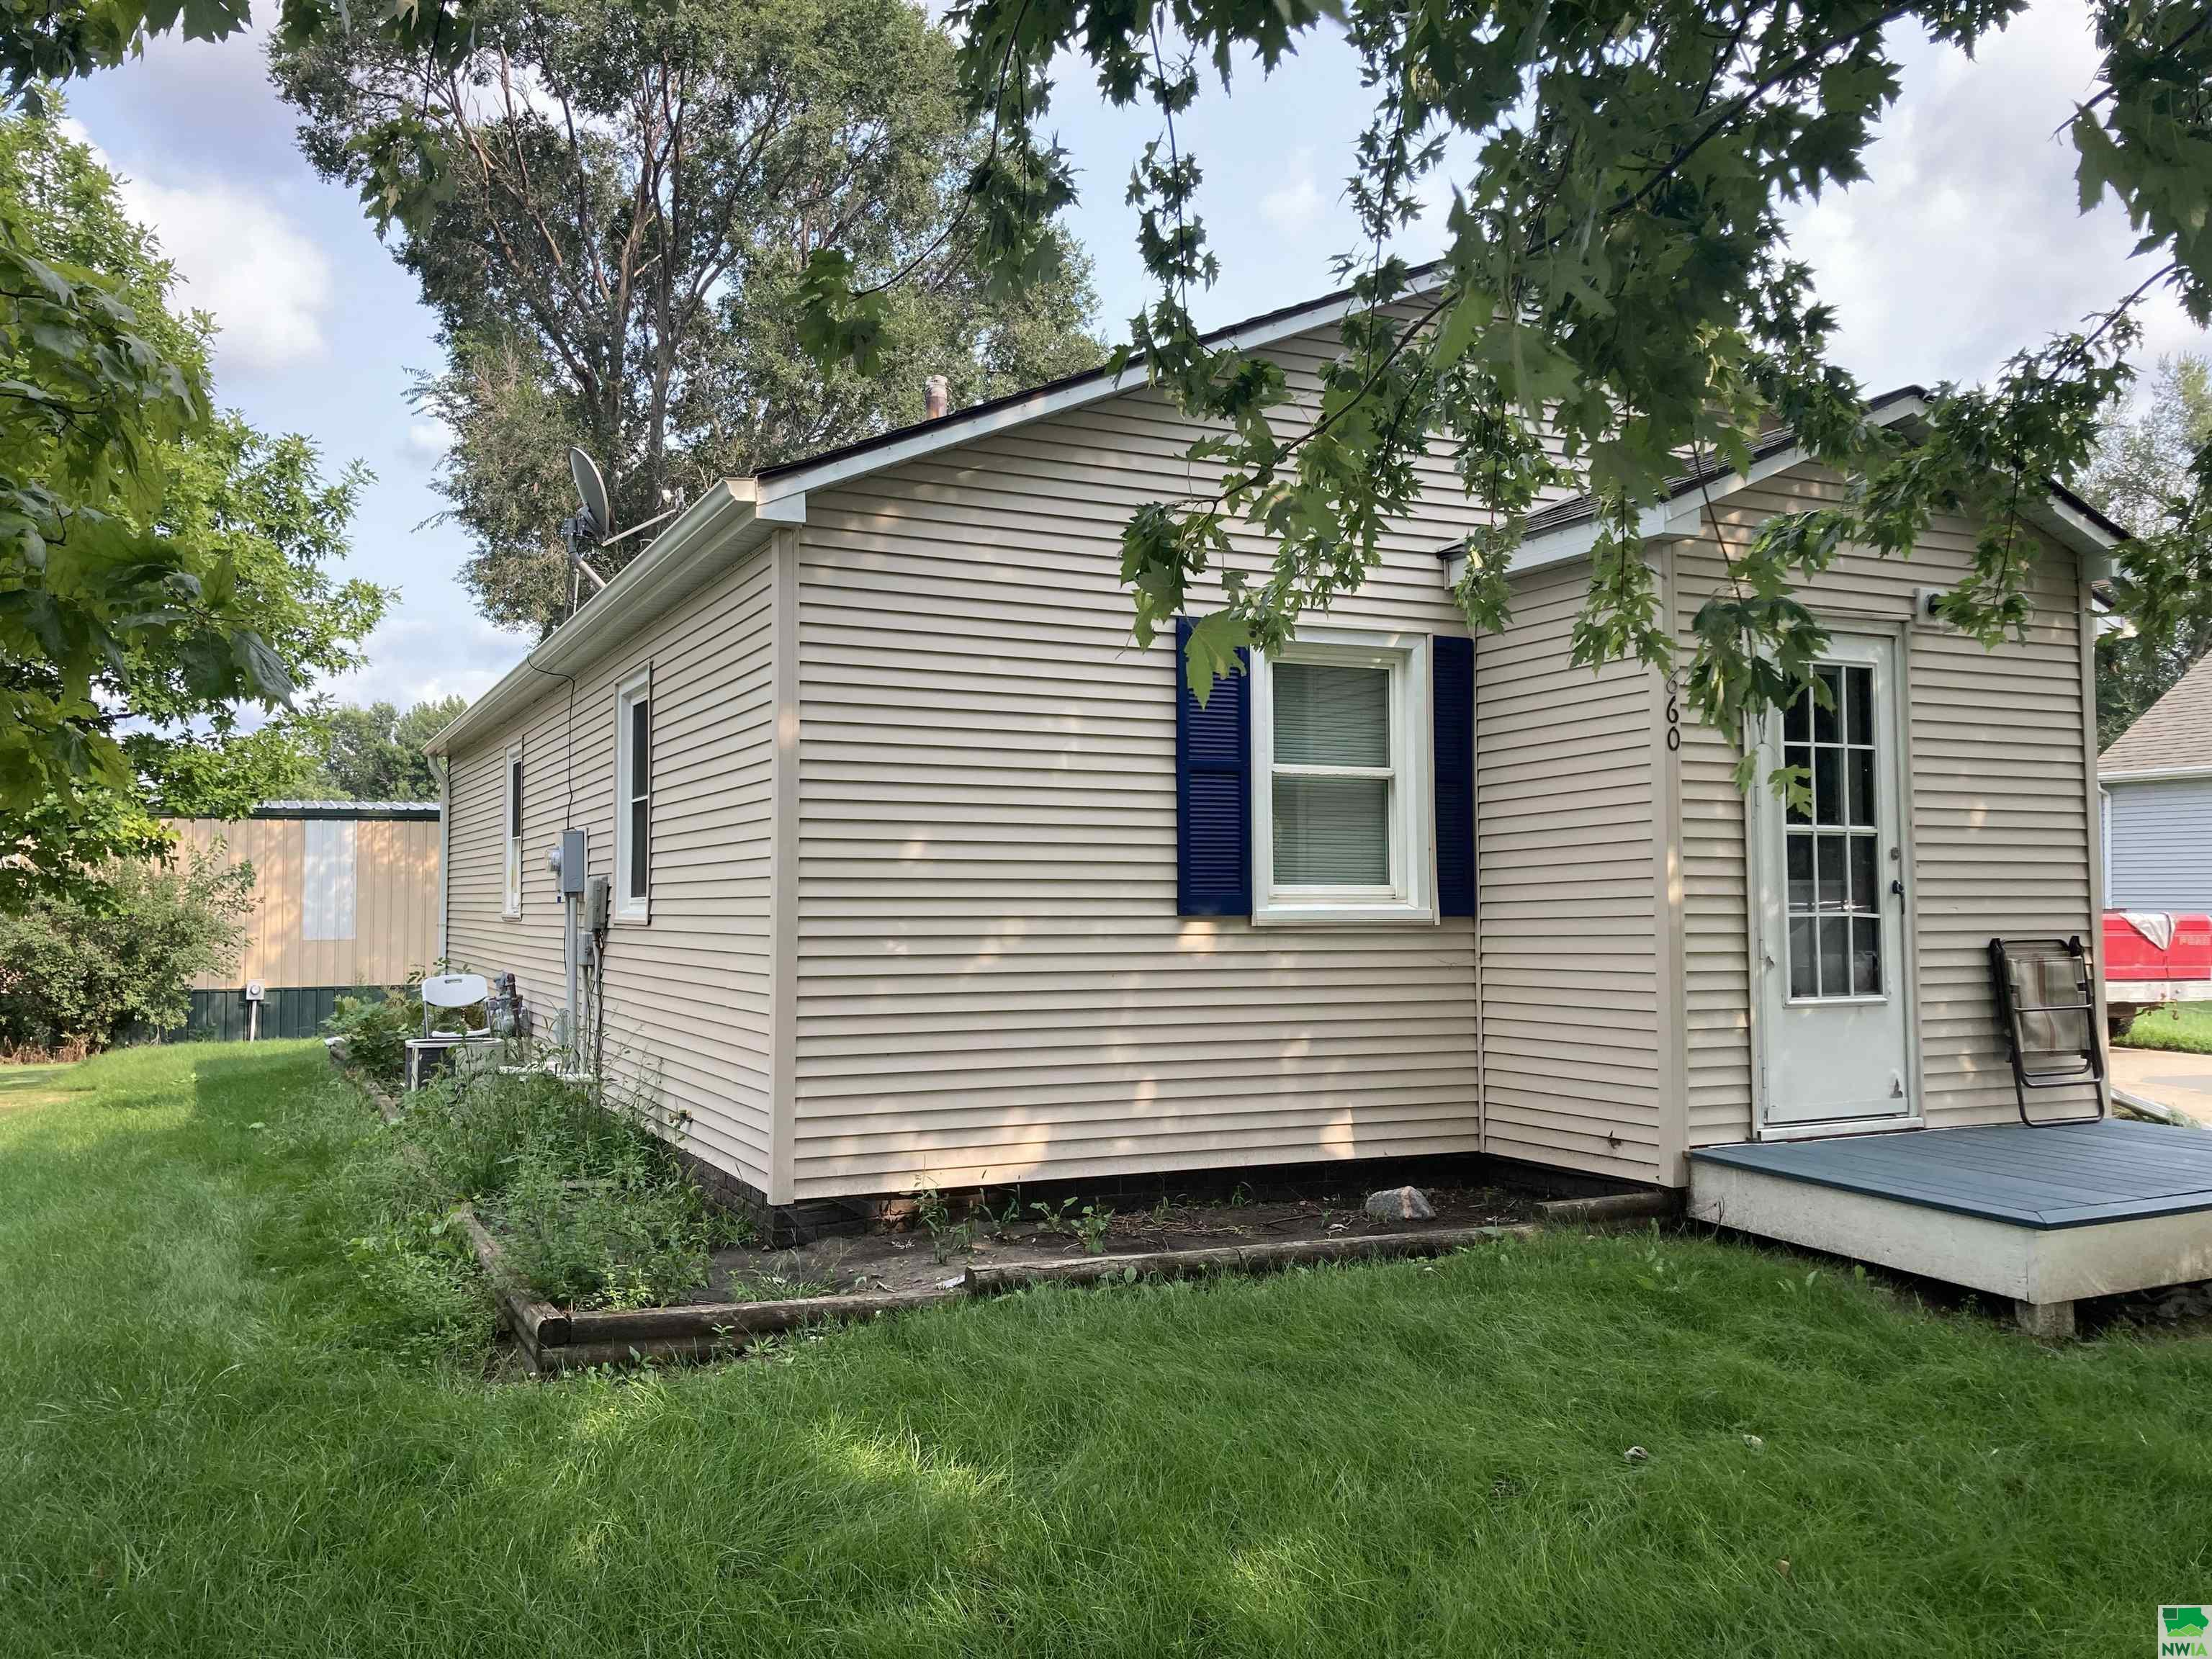 860 8TH AVE NW, Sioux Center, Iowa 51250-